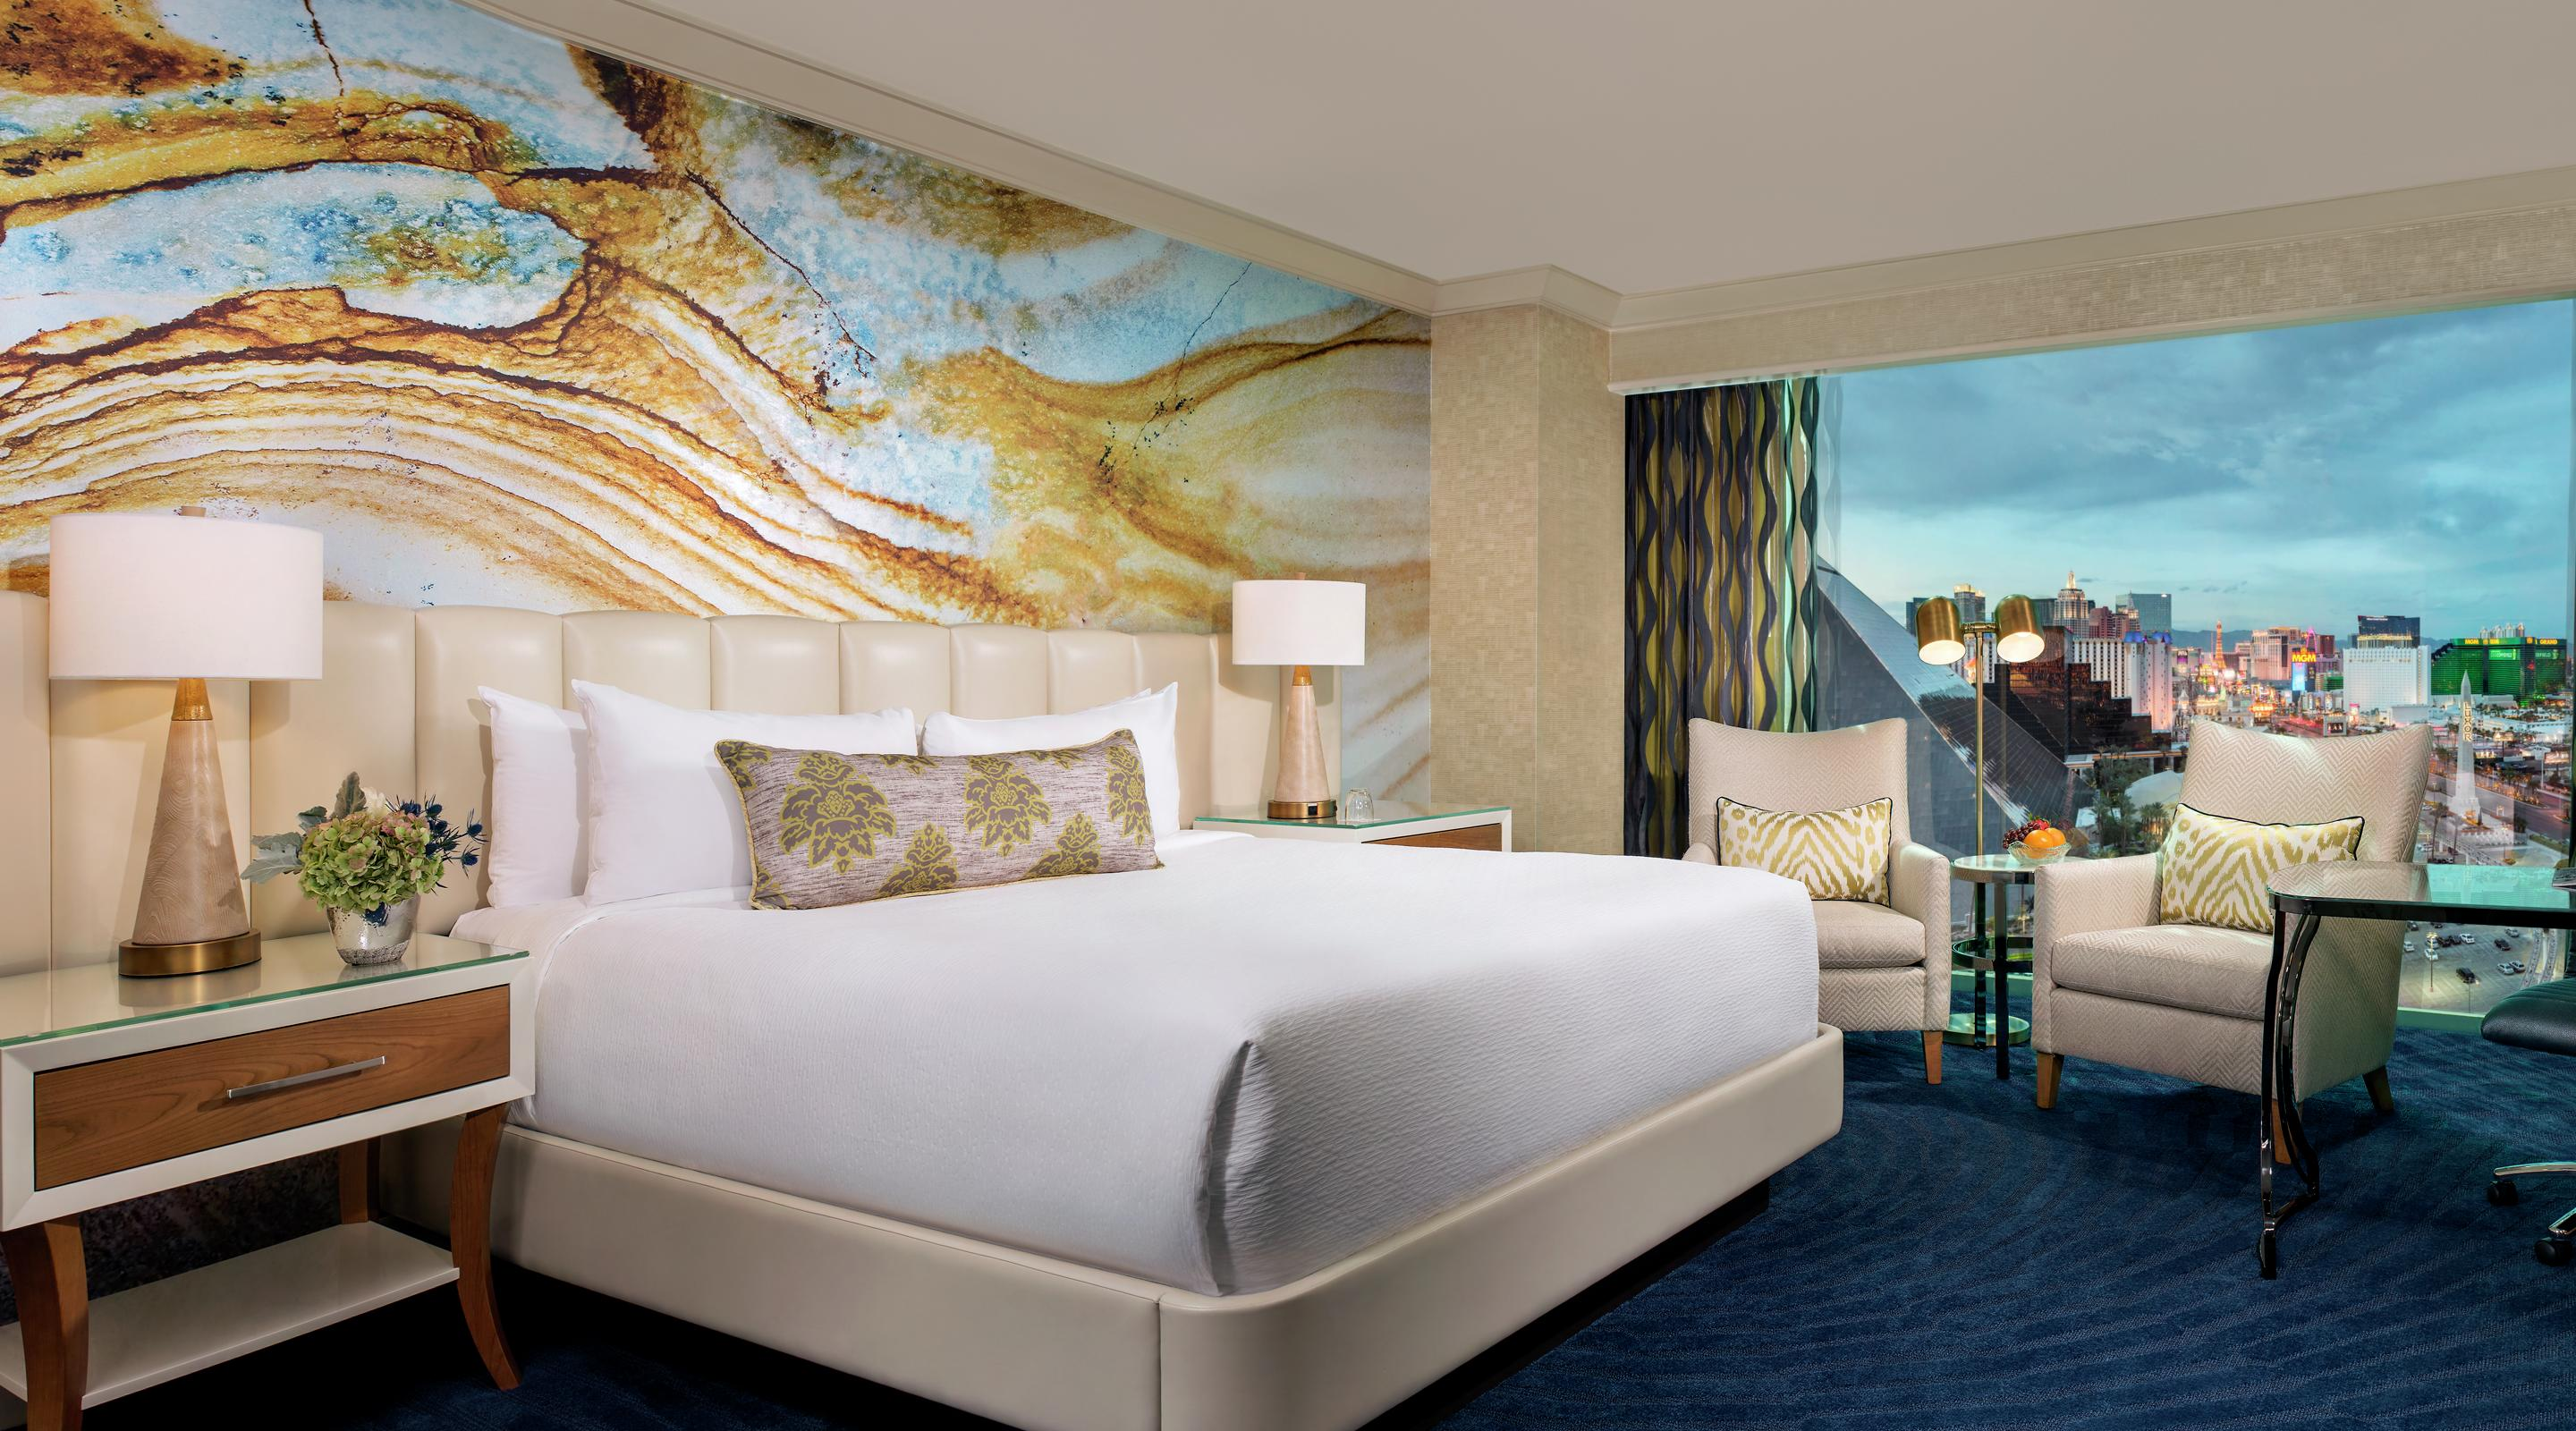 Our newly remodeled Resort King room is the perfect blend of comfort and style.